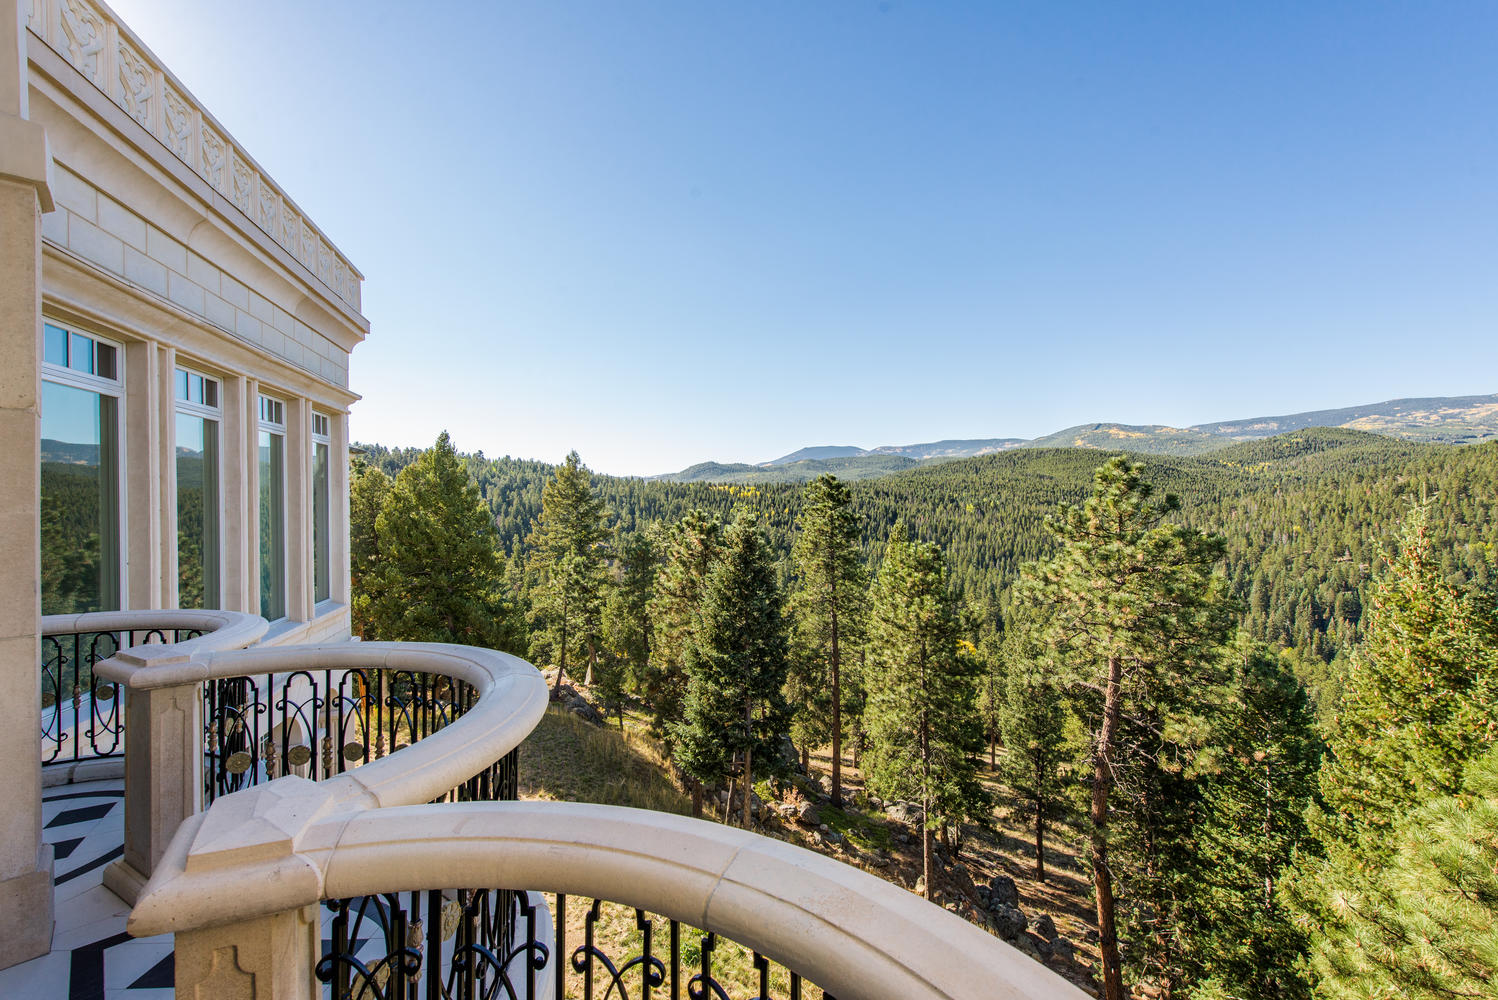 Additional photo for property listing at The largest residential undertaking in Evergreen 600 Chateau V Rd Evergreen, Colorado 80439 United States